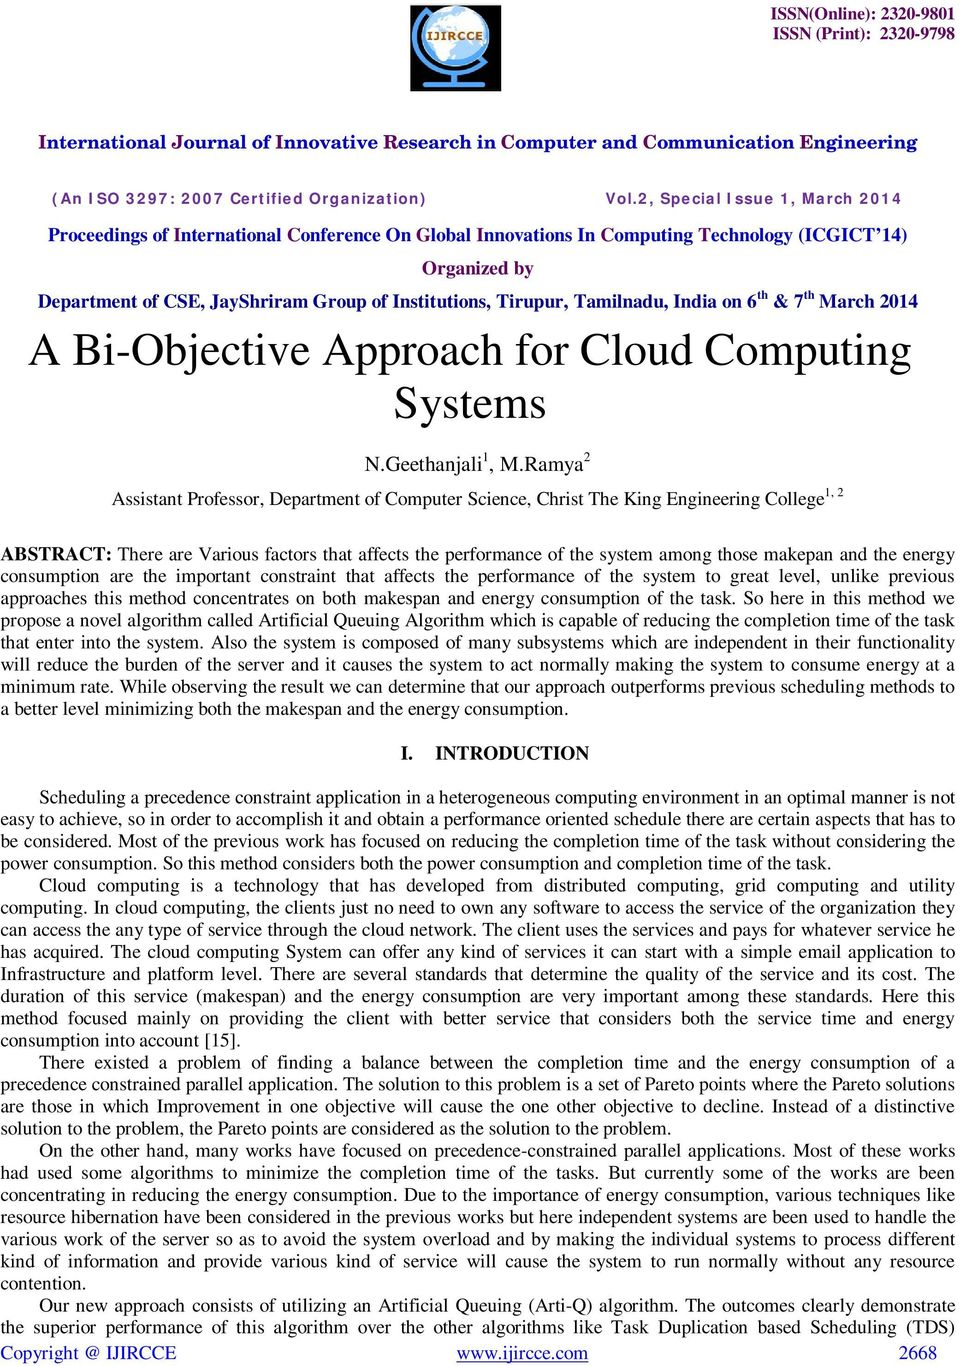 makepan and the energy consumption are the important constraint that affects the performance of the system to great level, unlike previous approaches this method concentrates on both makespan and